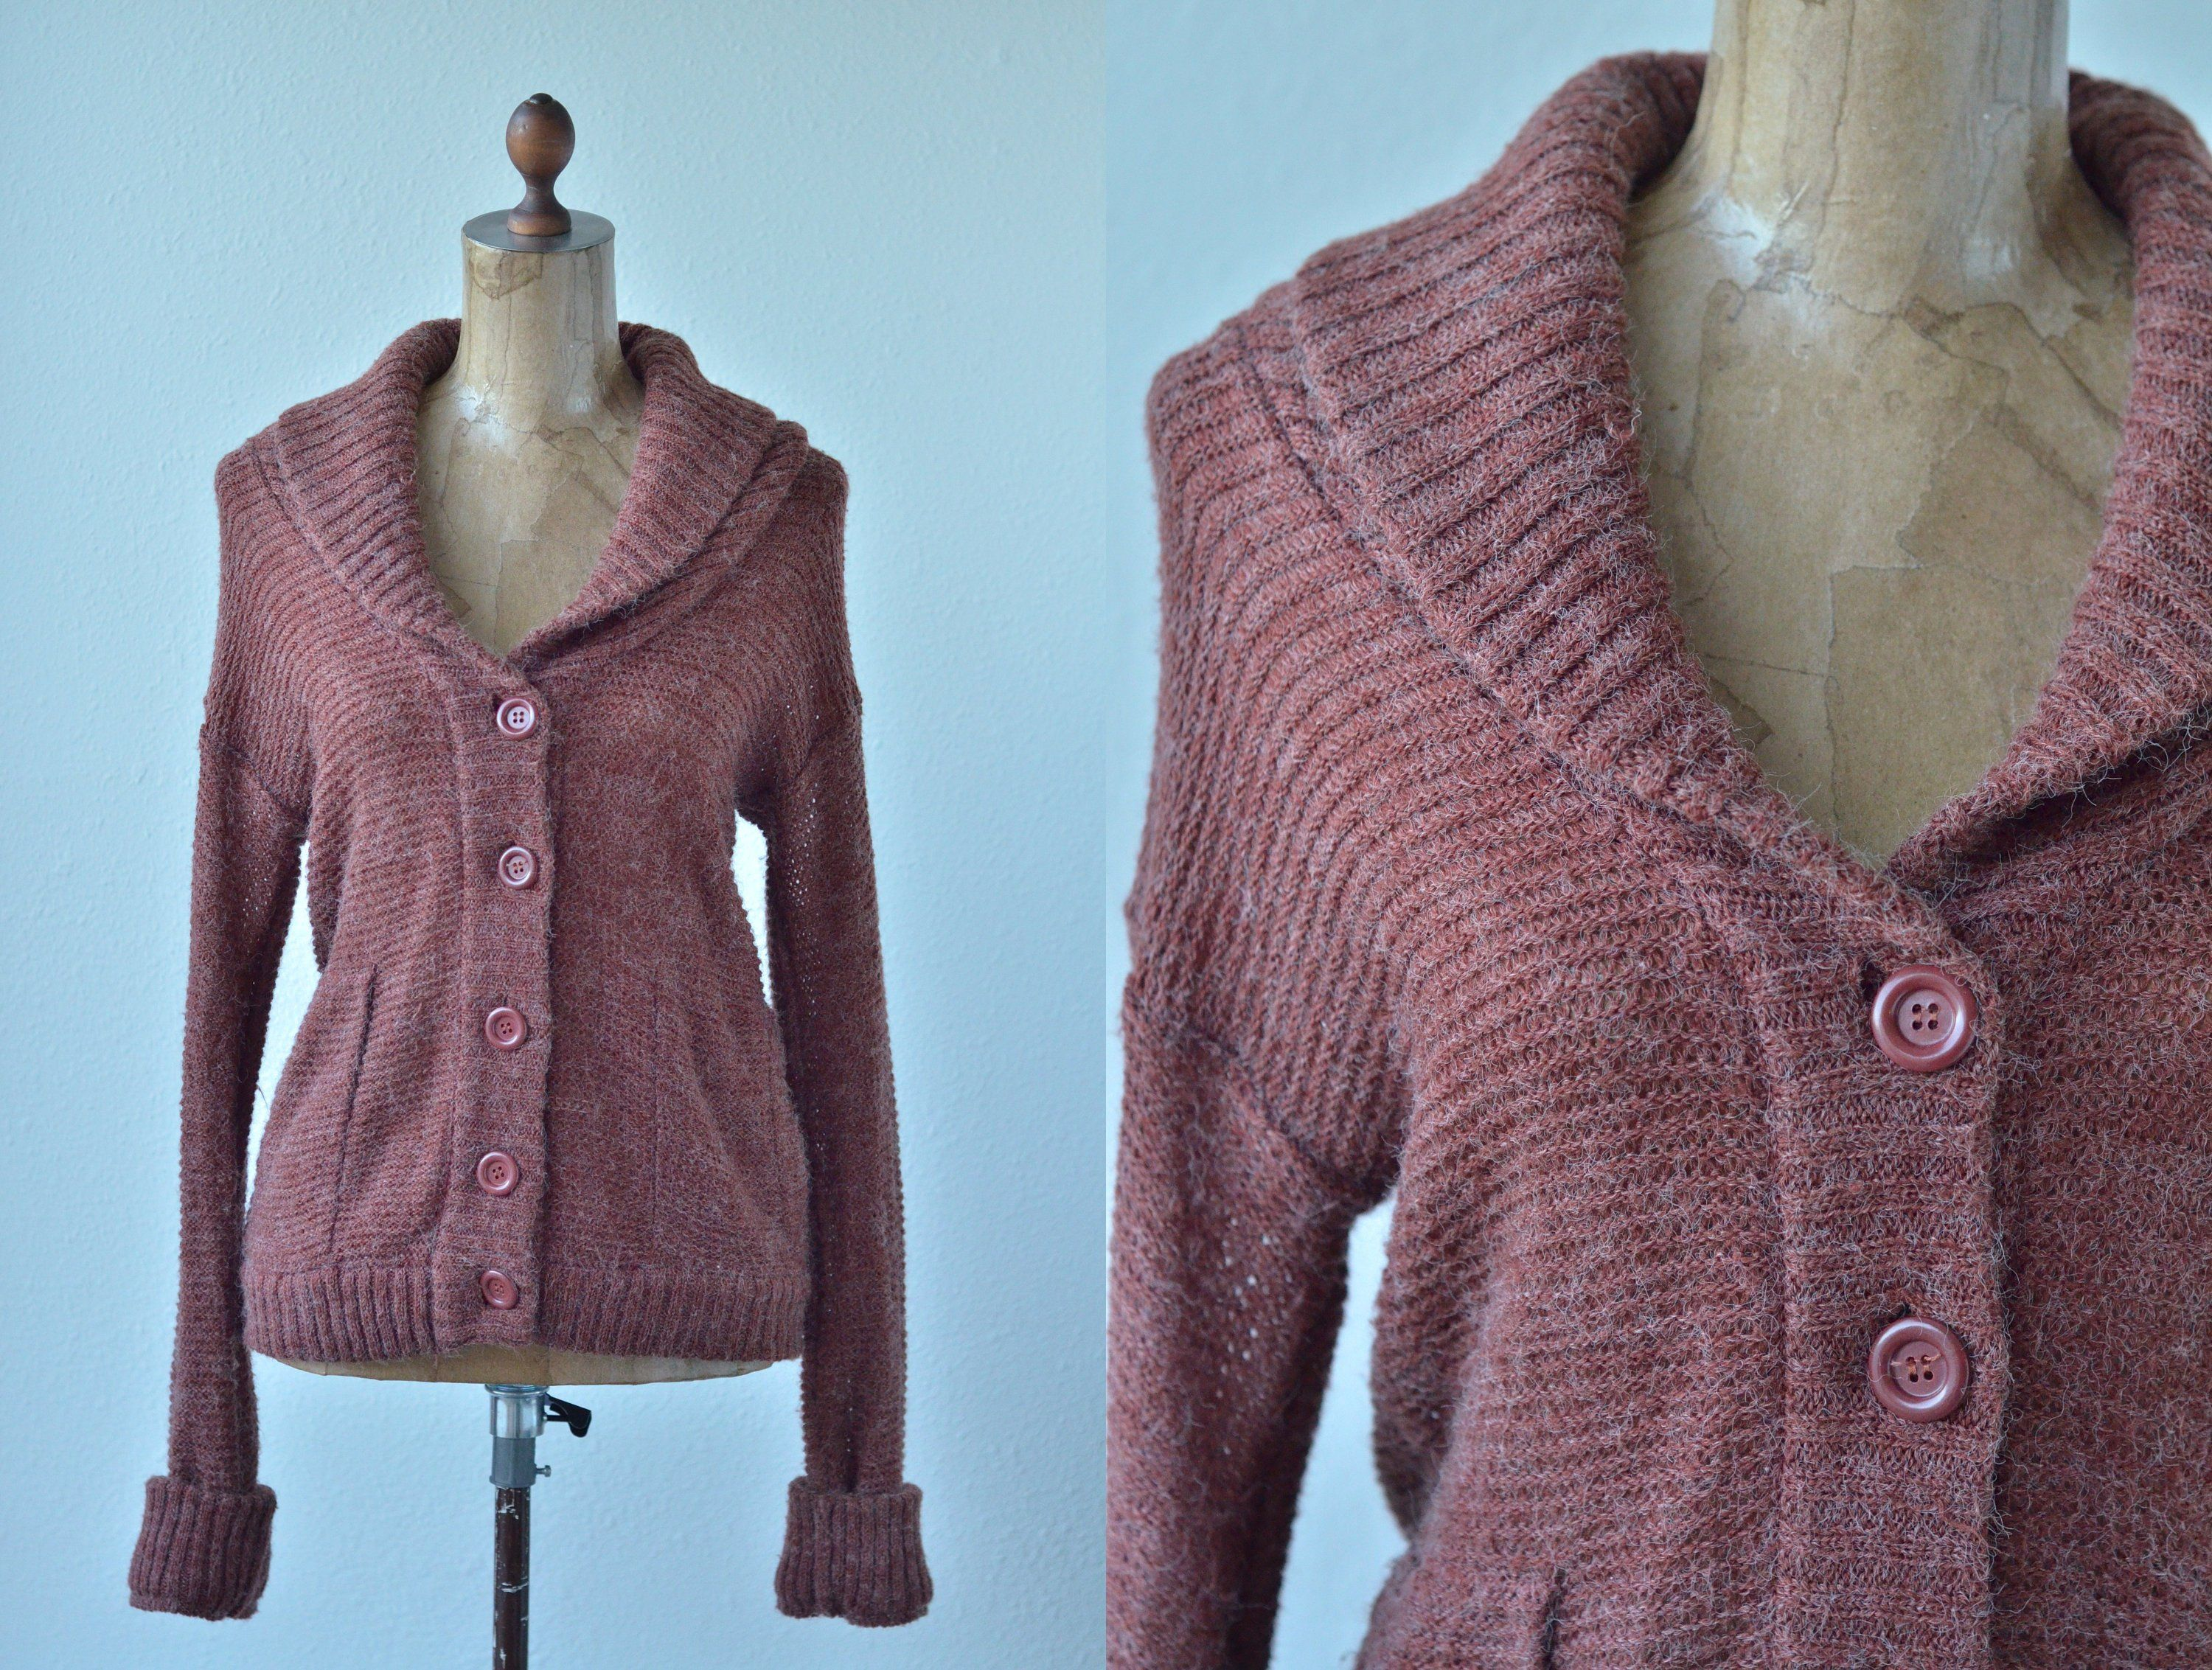 Pin By Courtney Burton On Mobius Mod Vintage Clothes Mr Rogers Sweater Sweaters Red Cardigan